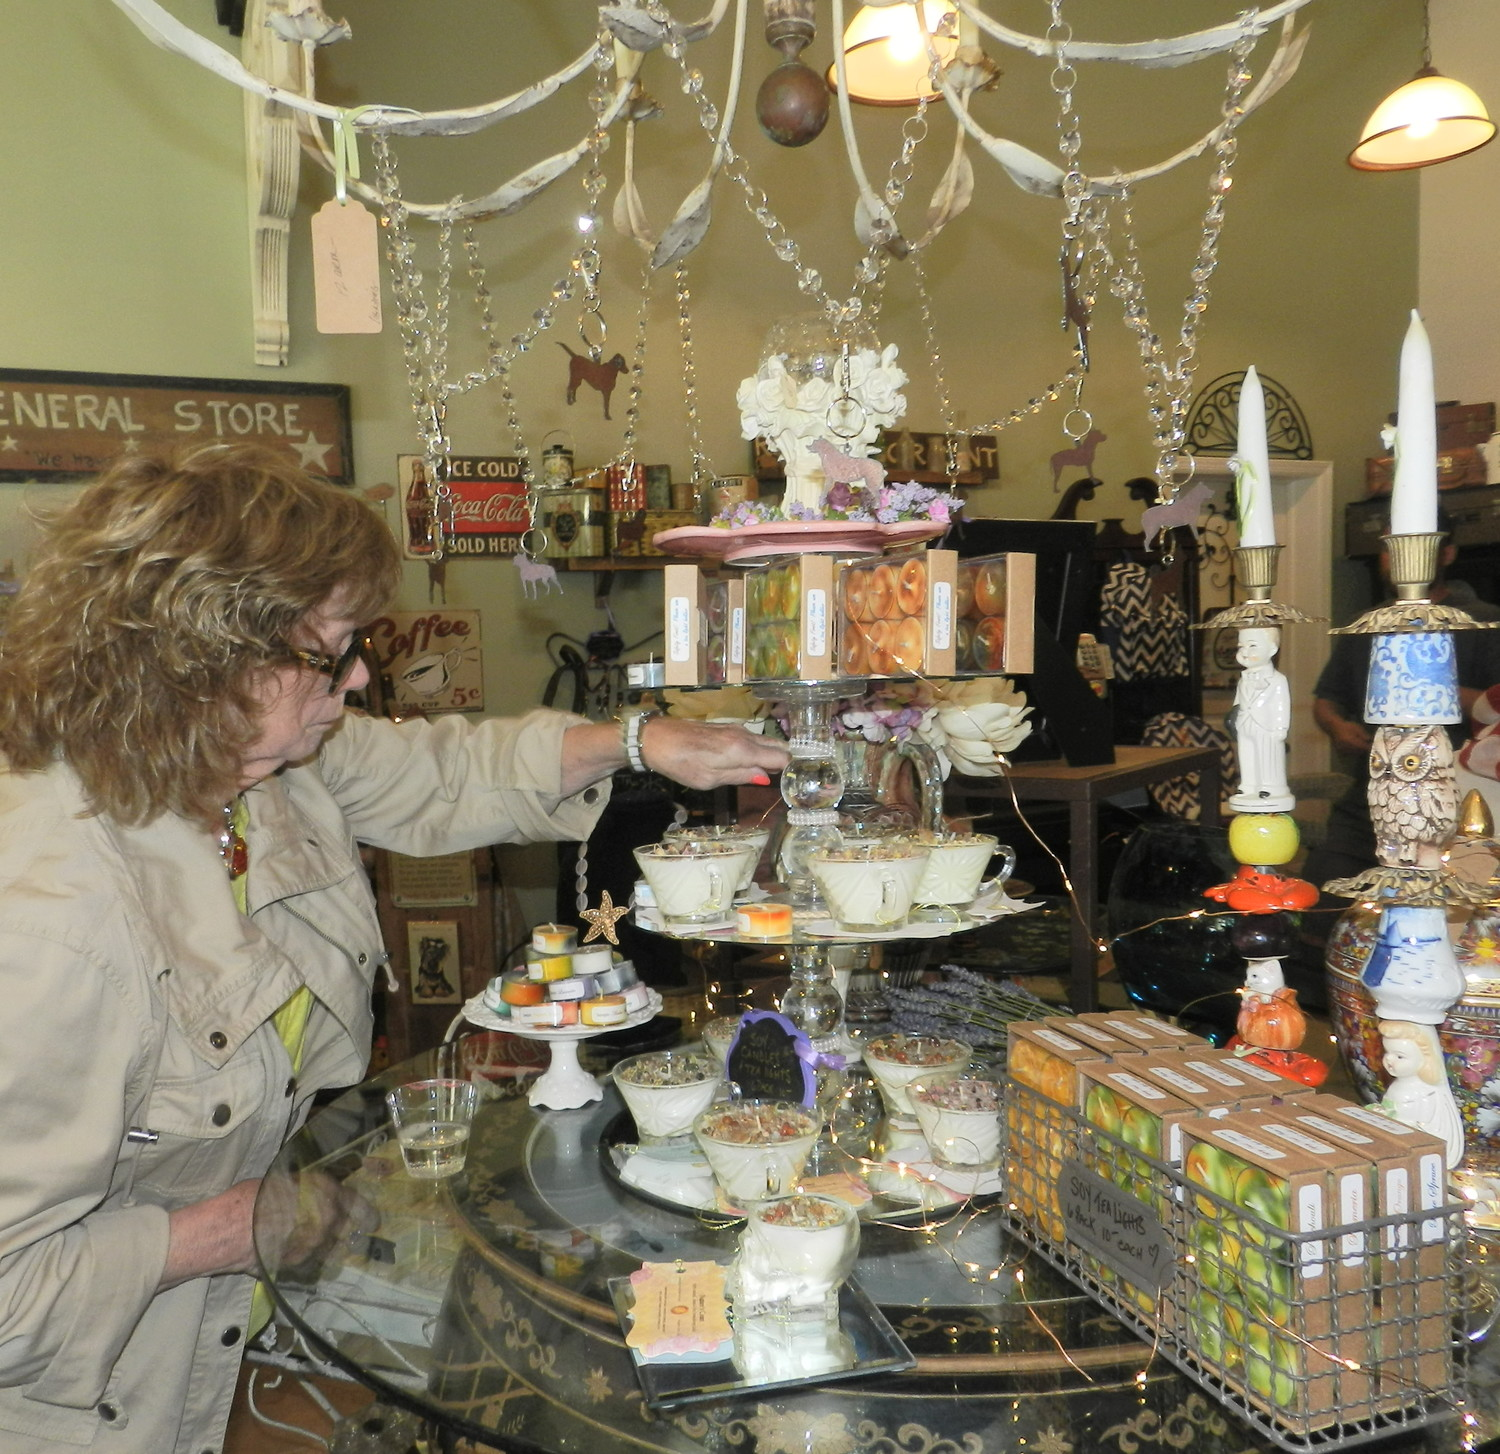 In addition to antiques and decorative pieces, the store offers organic candles and vegan cosmetic goods.